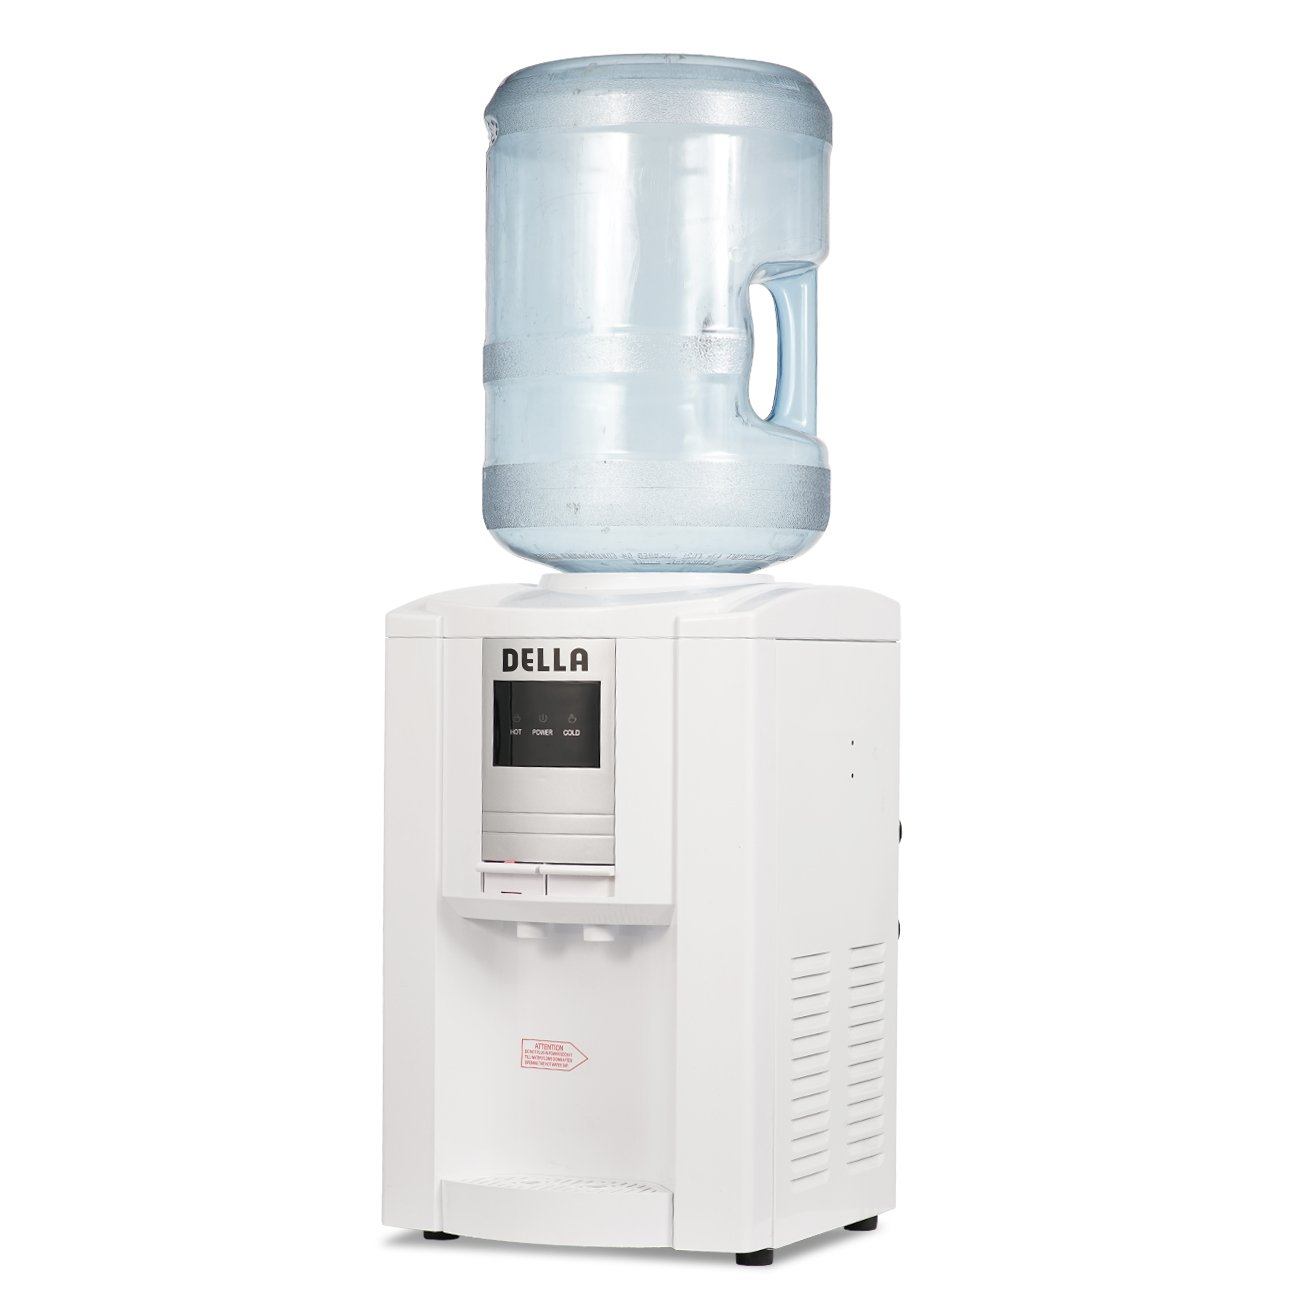 DELLA White Hot Cold Water Dispenser Counter Top Push Button Child Safety Lock Upright Load Spout Function Home Office